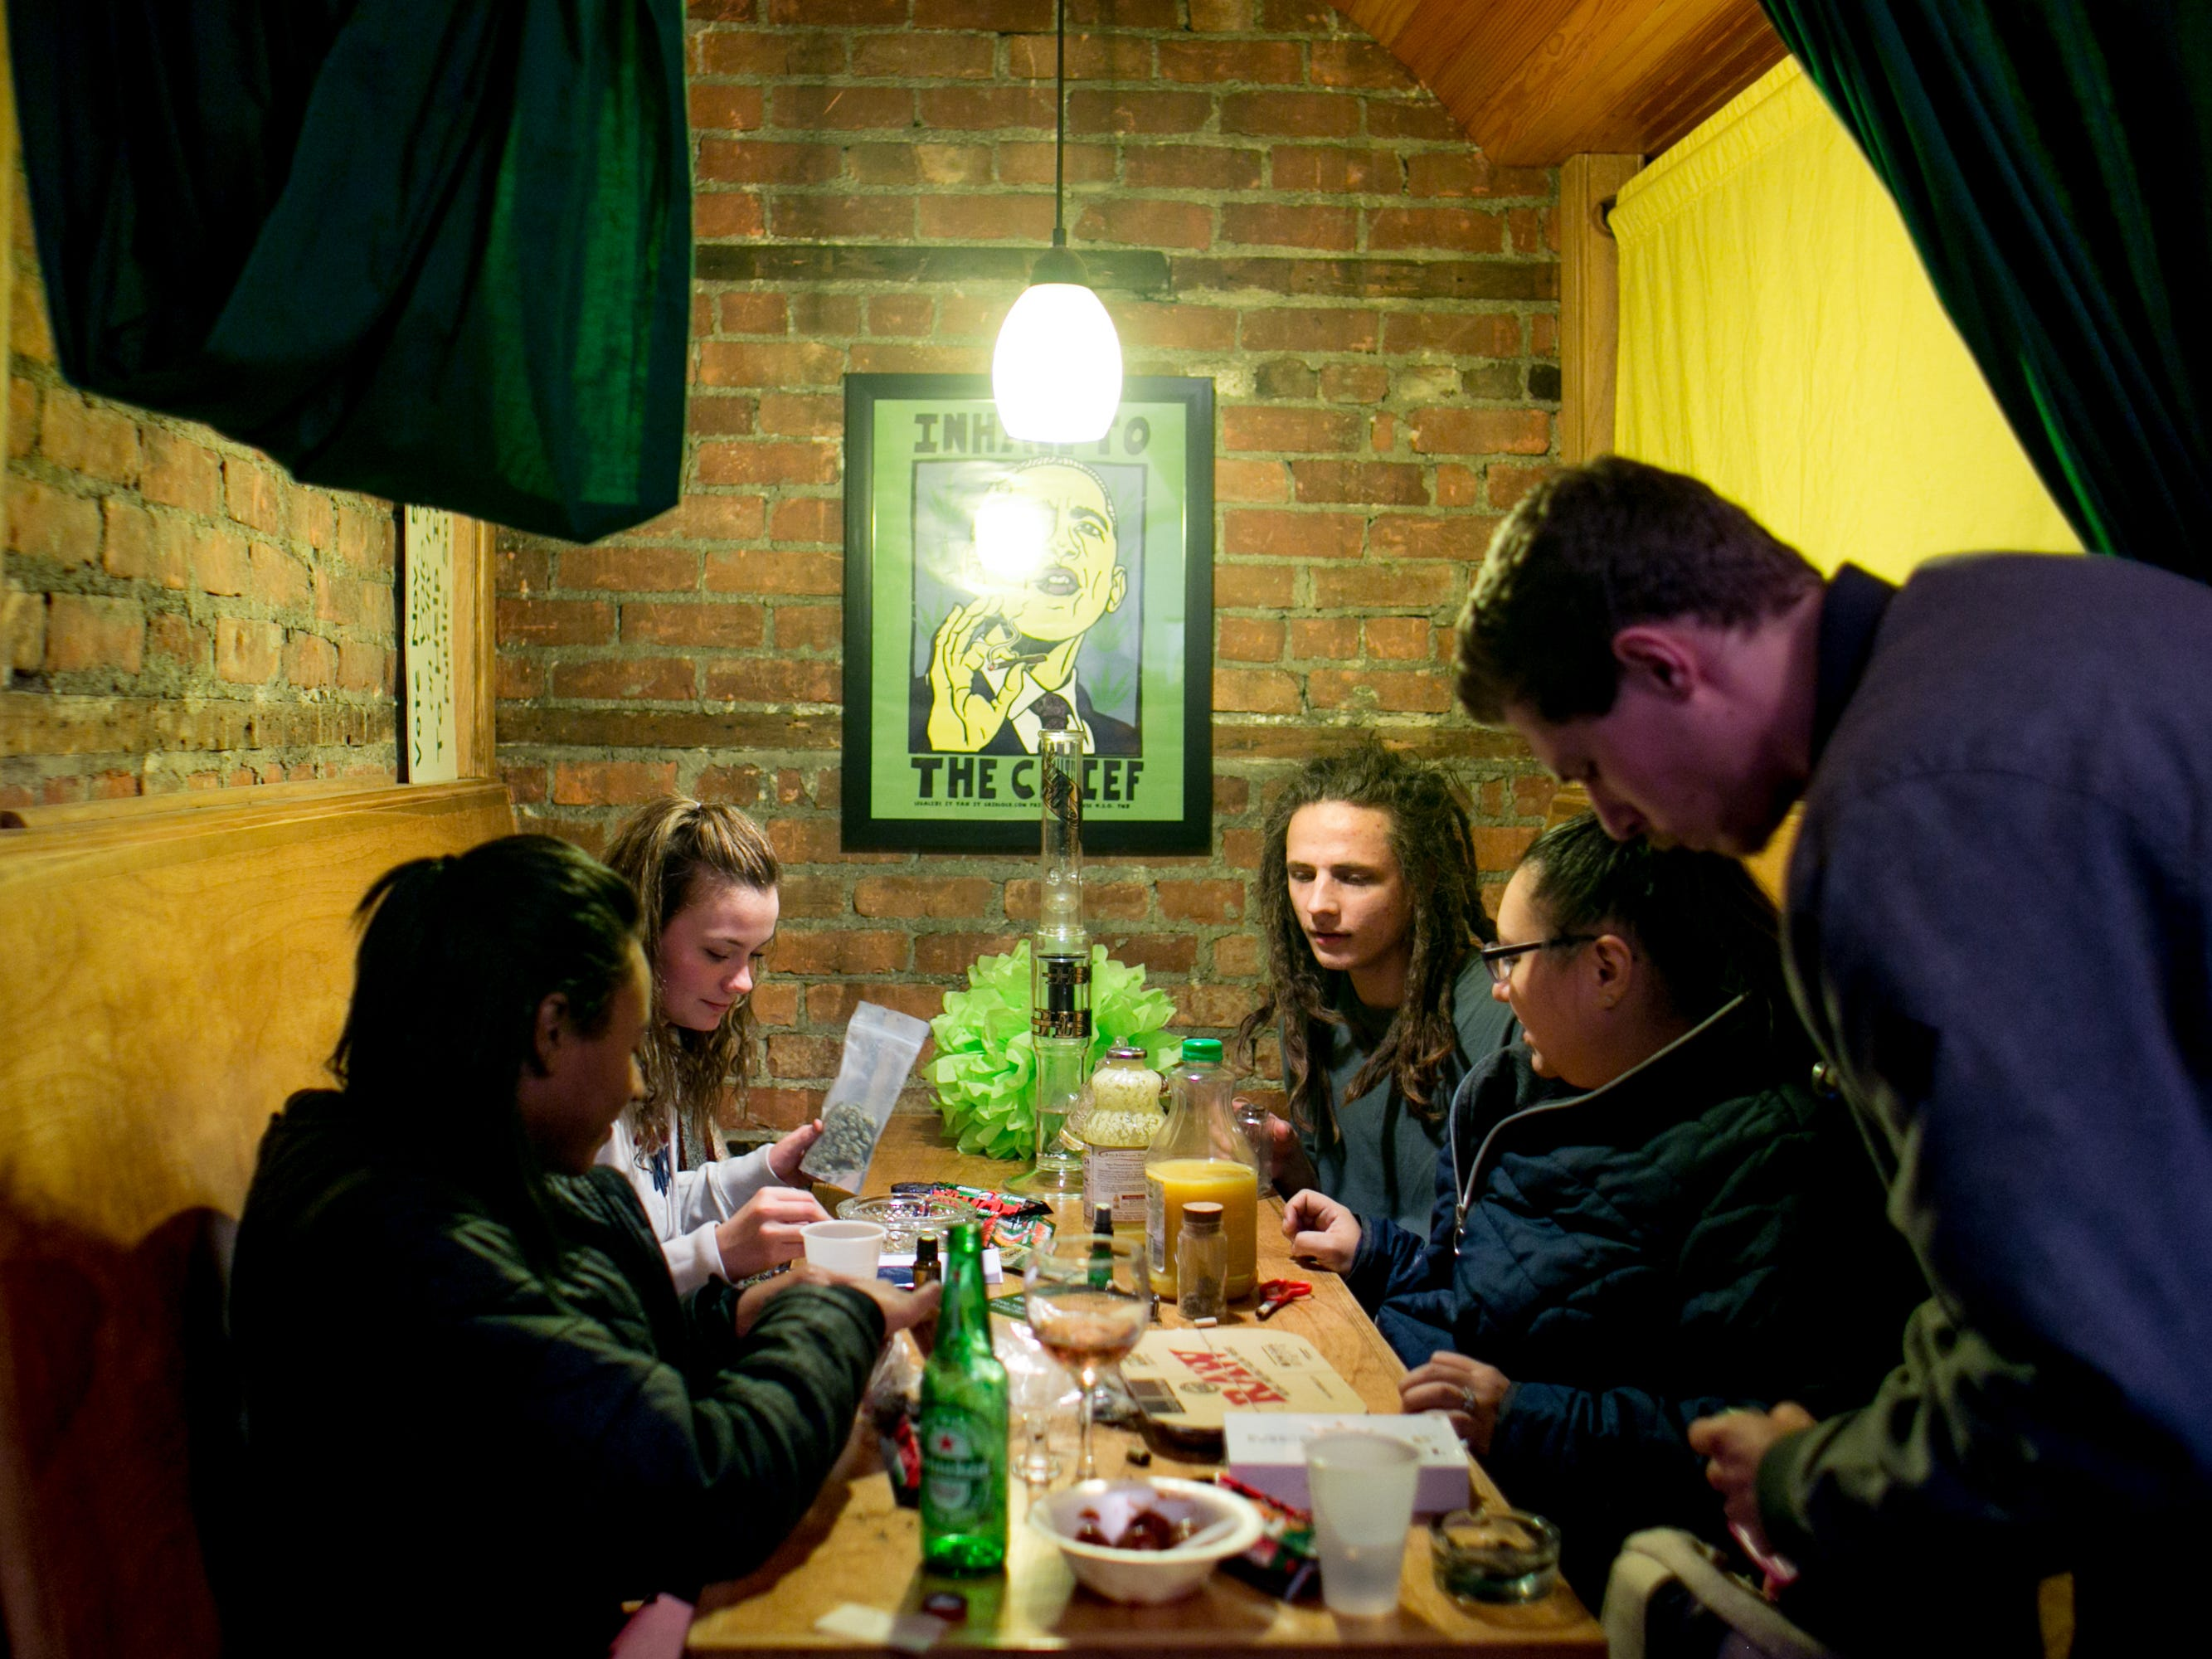 People gather in a restaurant-style booth at a party celebrating the first day of legal recreational marijuana use.